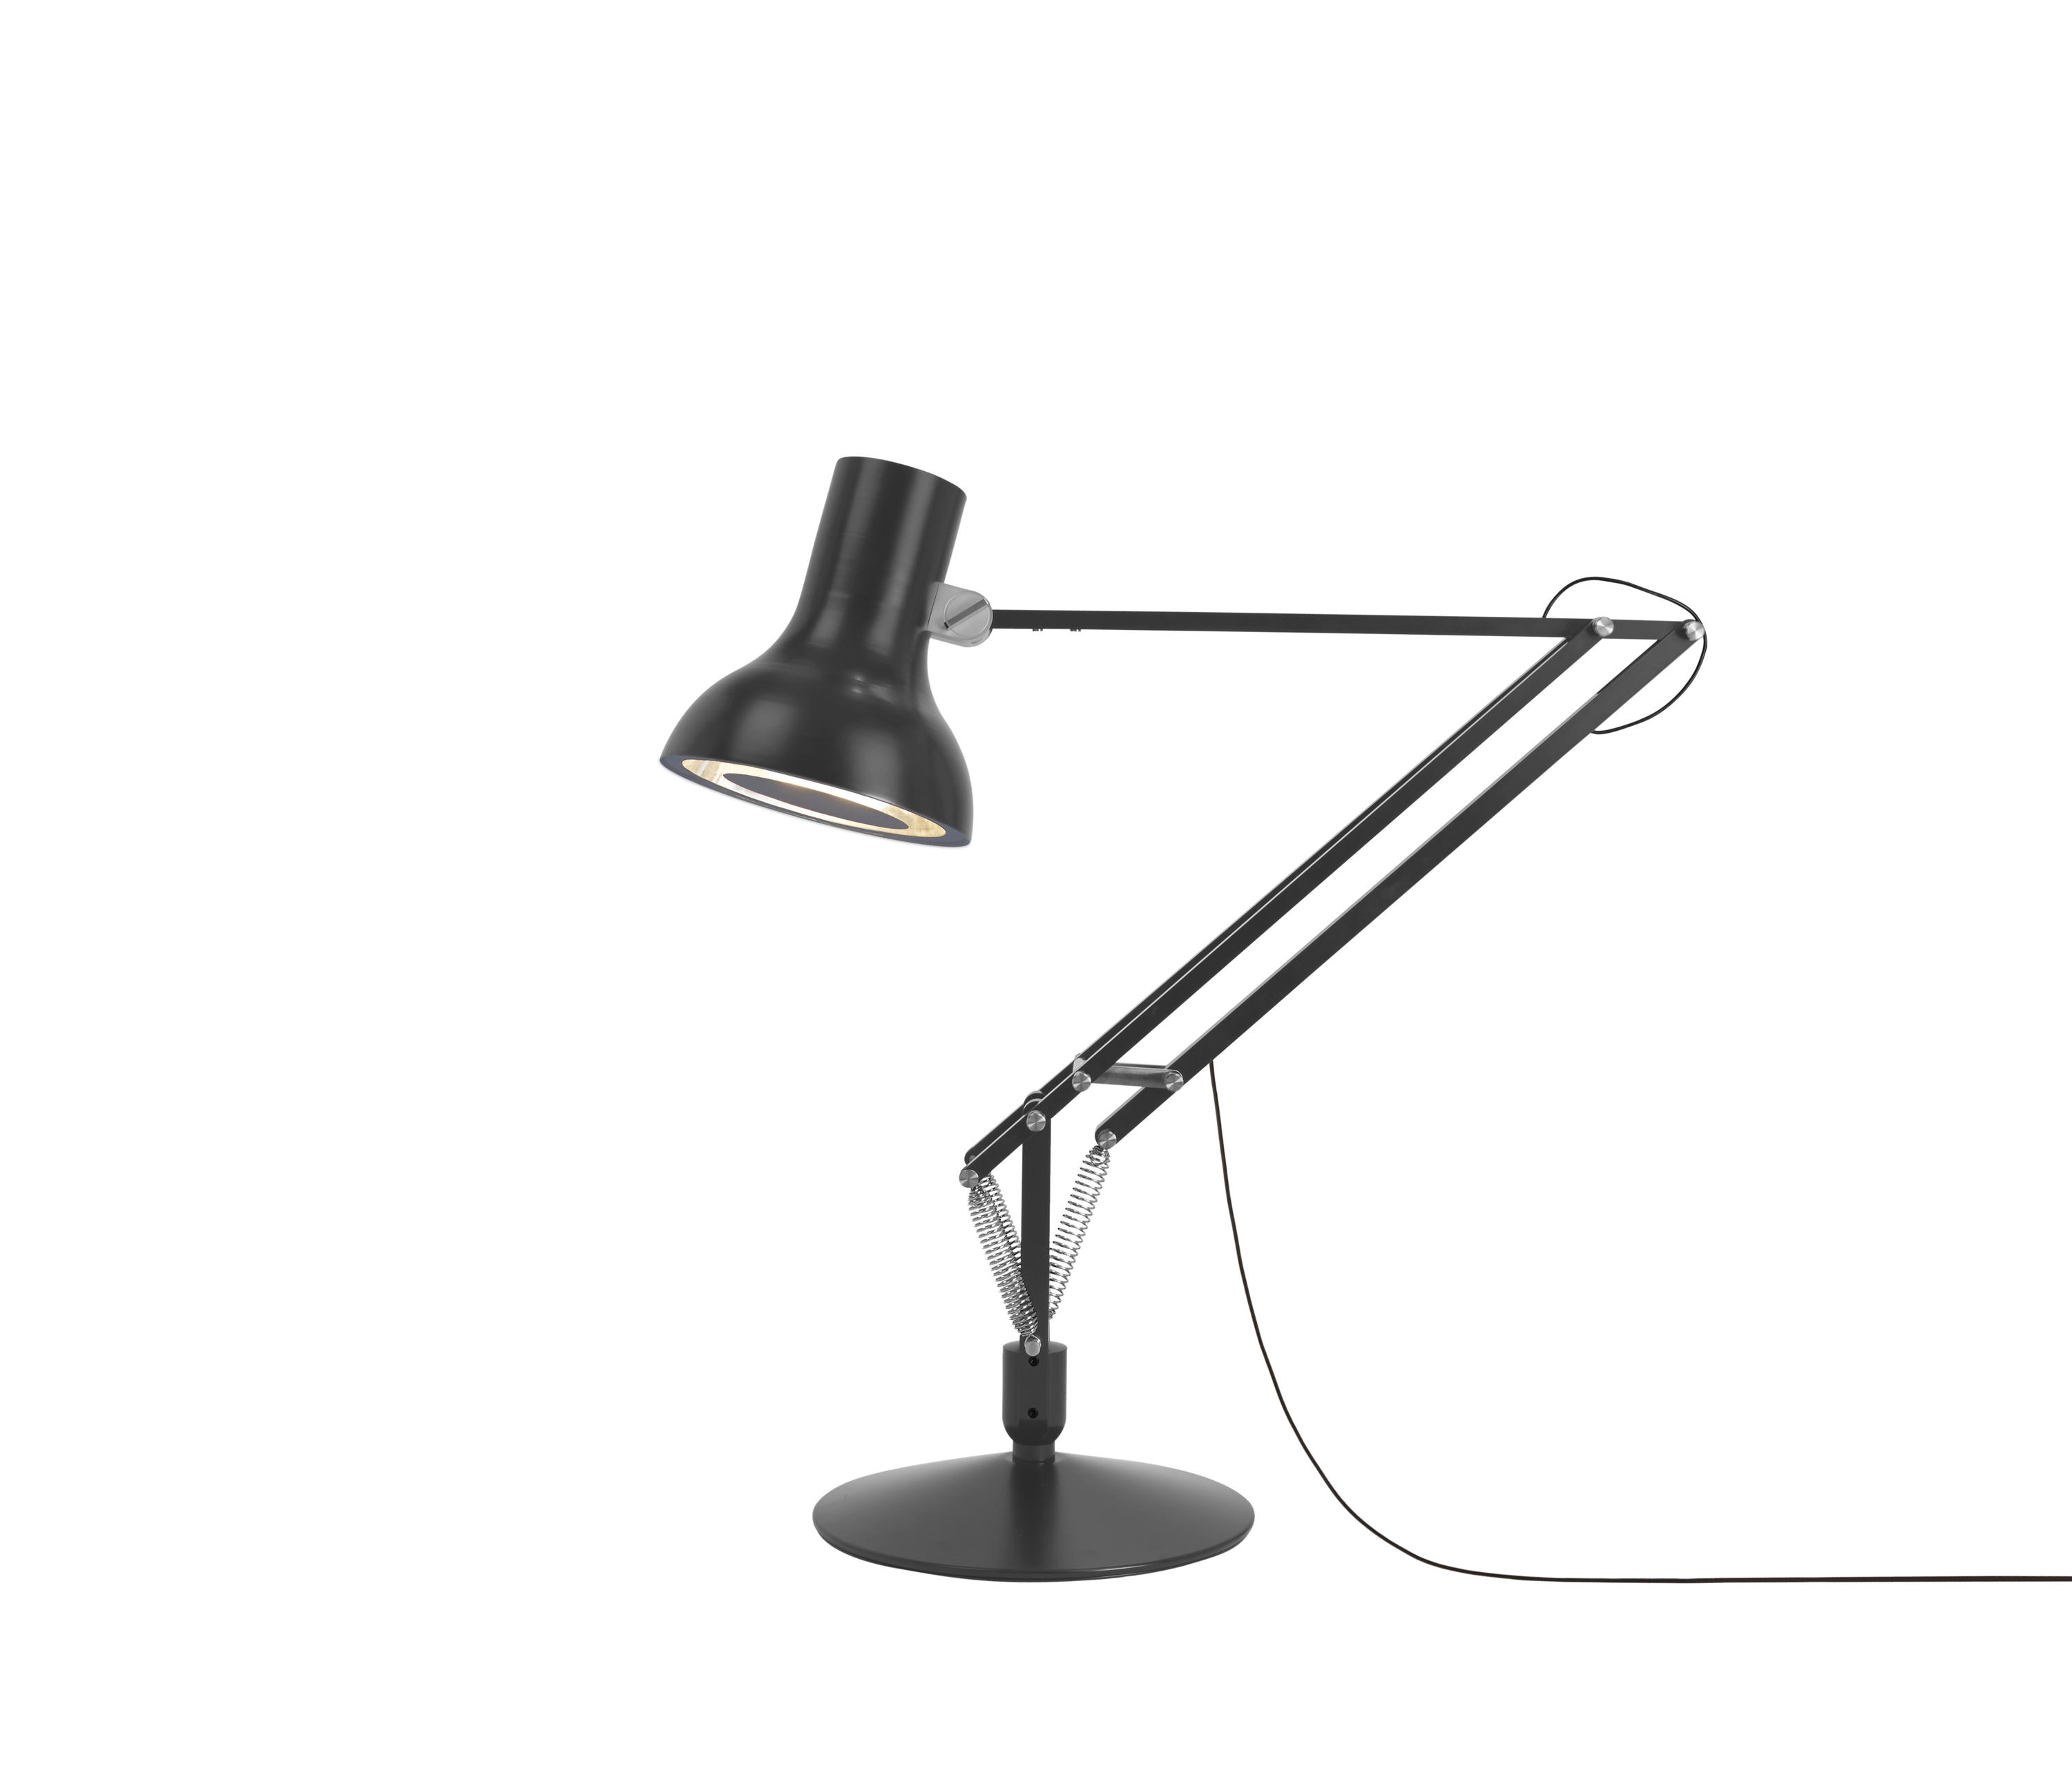 Anglepoise floor lamp b and q a large herbert terry anglepoise anglepoise floor lamp b and q type giant floor lamp general lighting from anglepoise architonic aloadofball Image collections